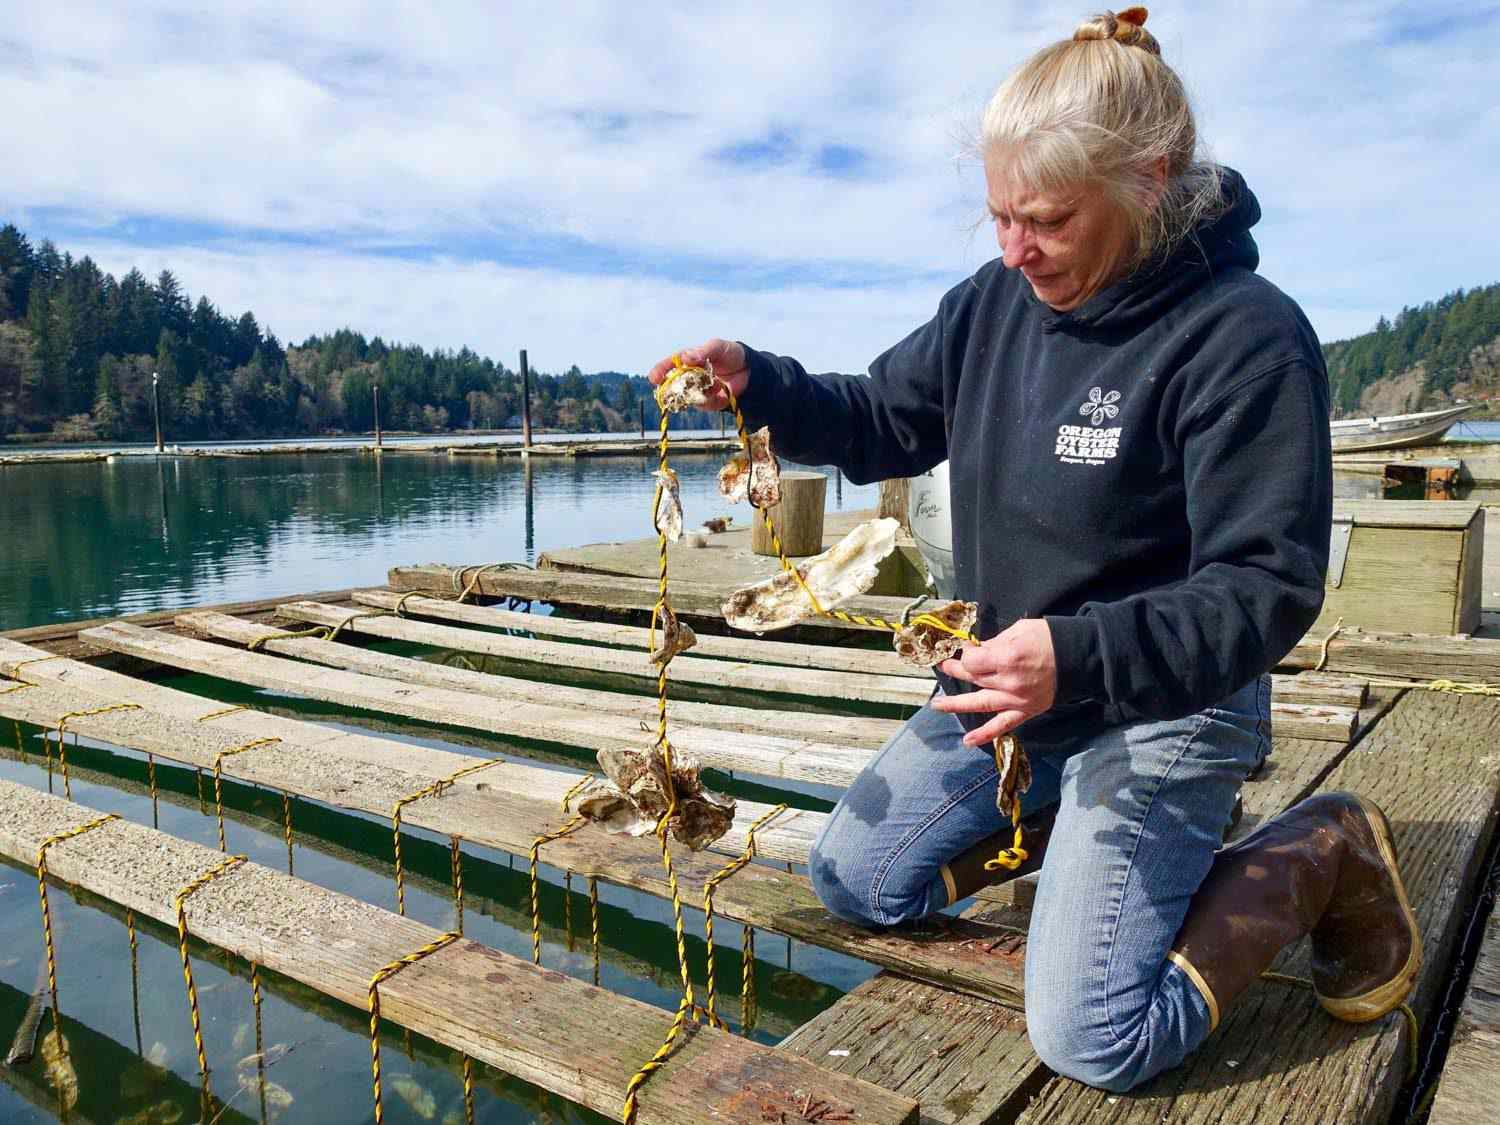 A woman in a blue hoodie kneeling on wooden slats, pulling up a cluster of oysters on a rope